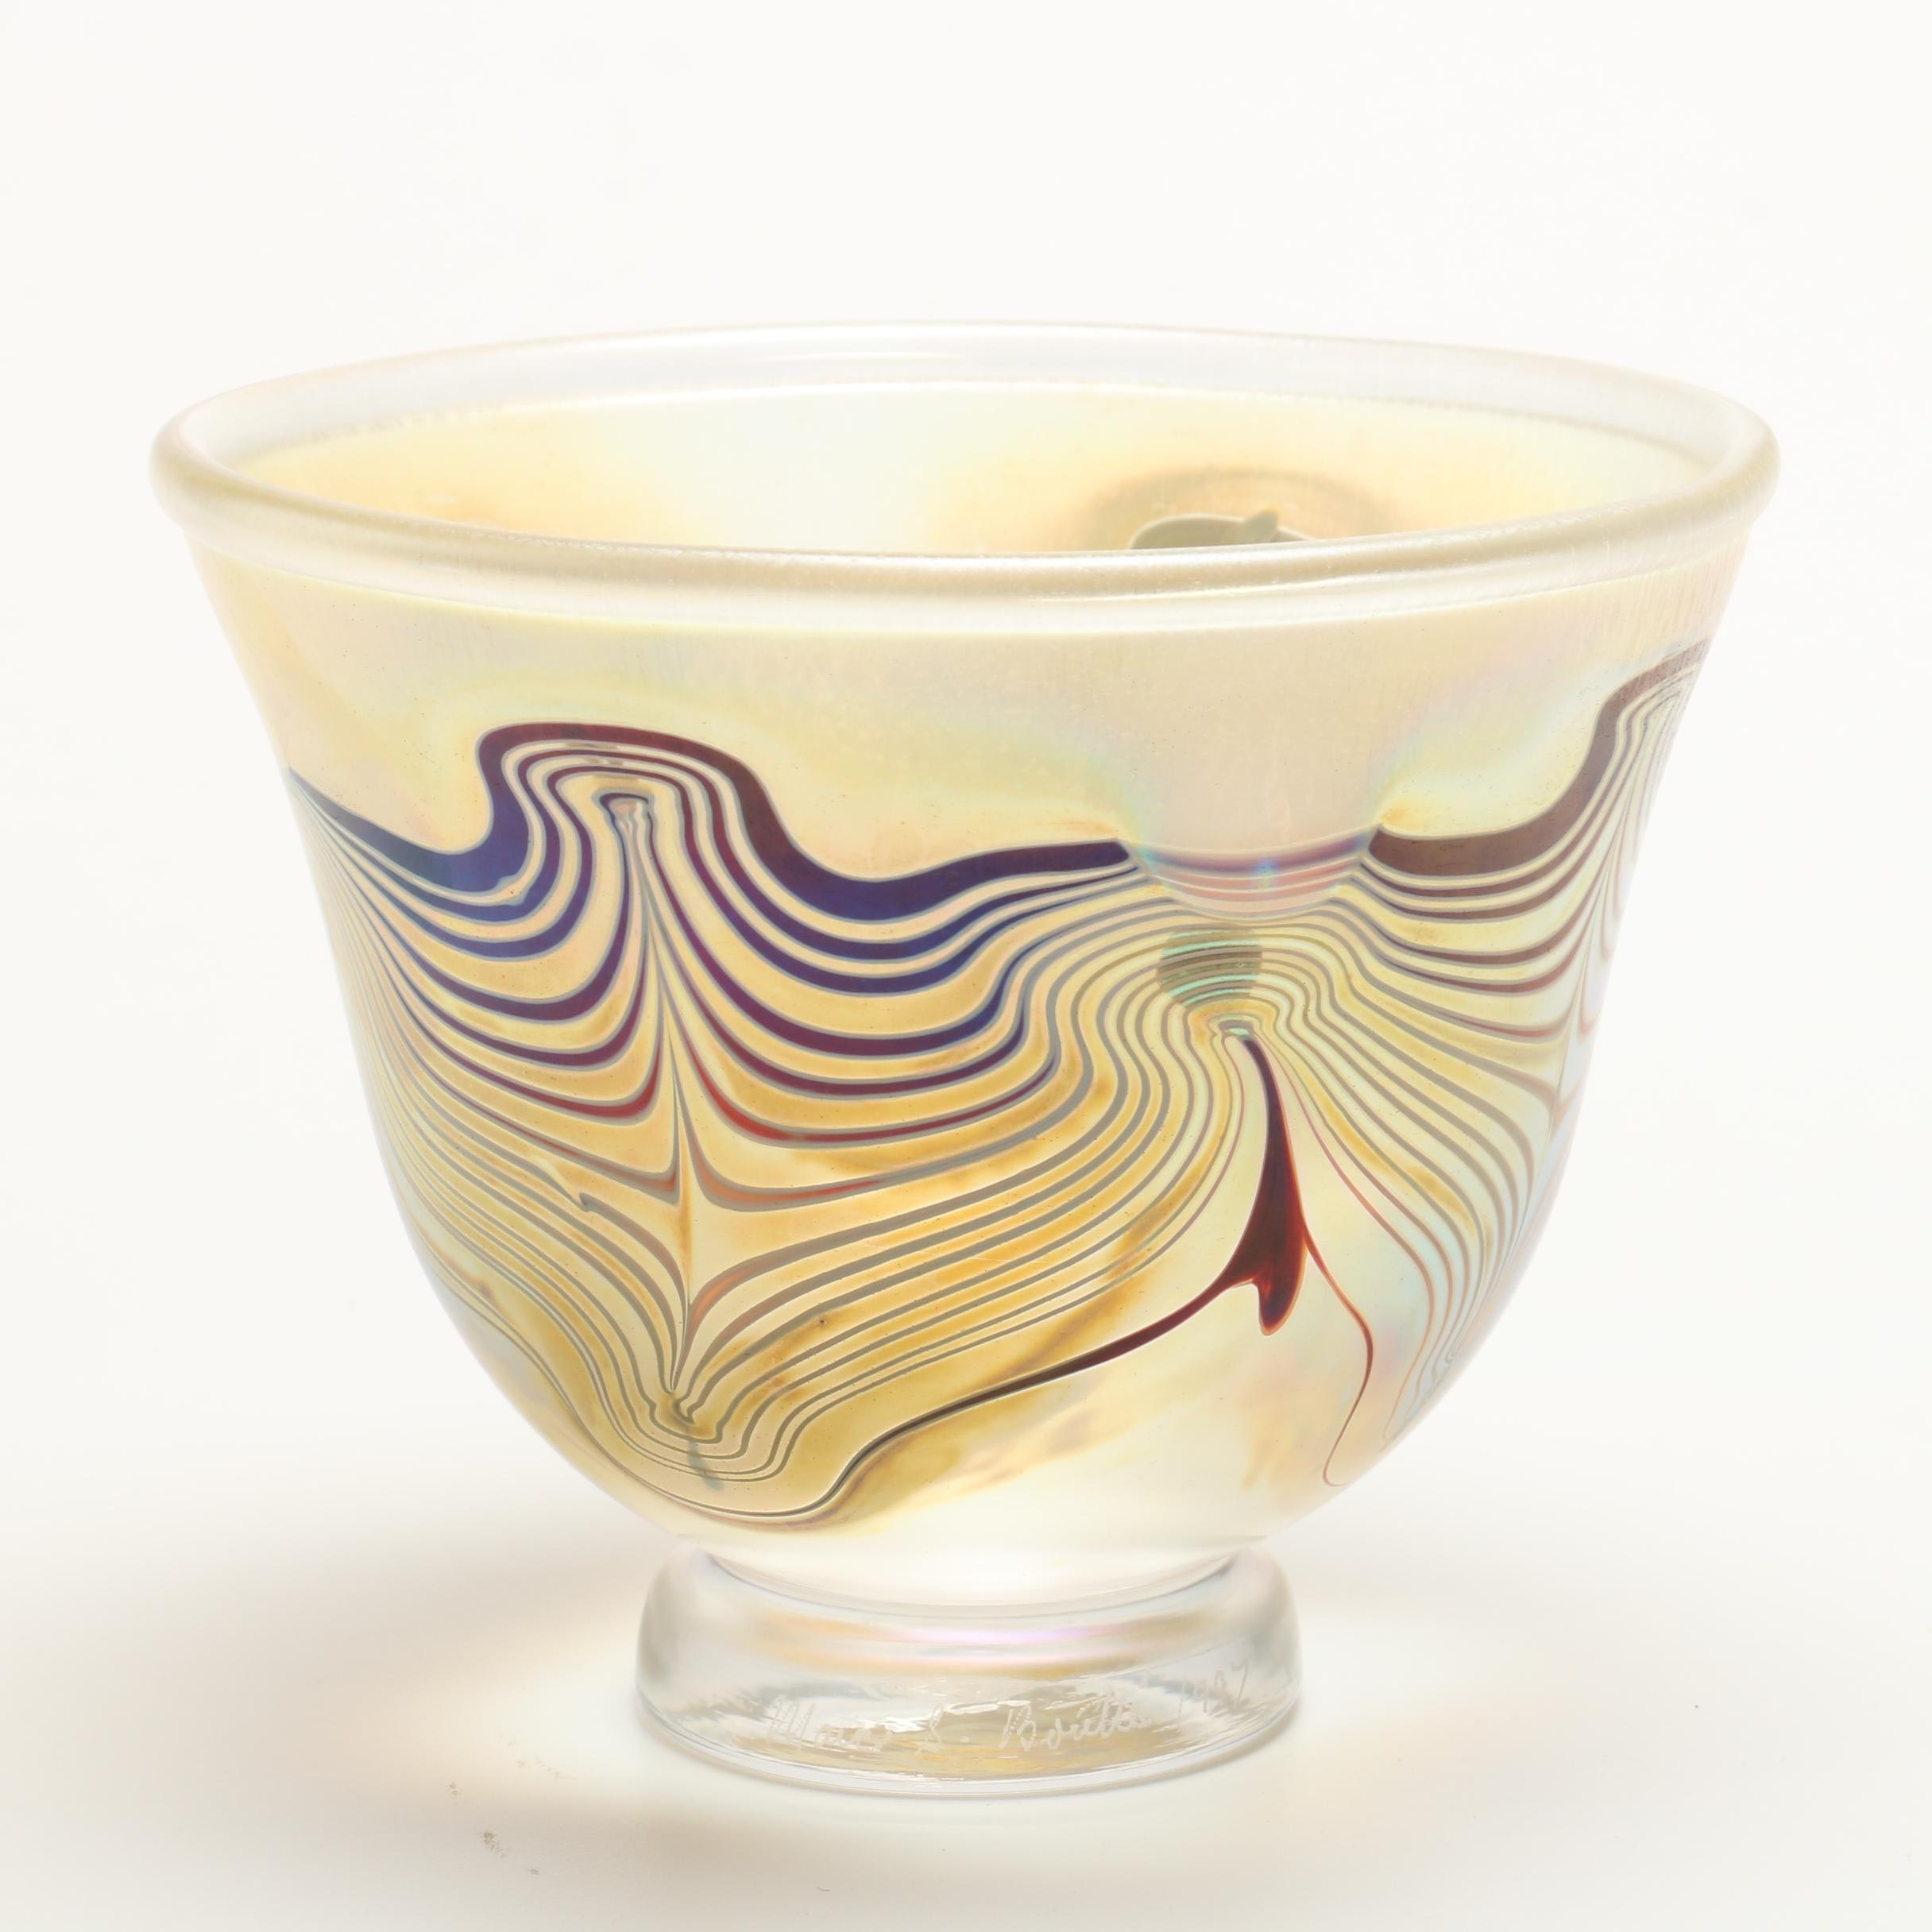 1997 Marc S. Bouttè Feathered Iridescent Art Glass Footed Bowl